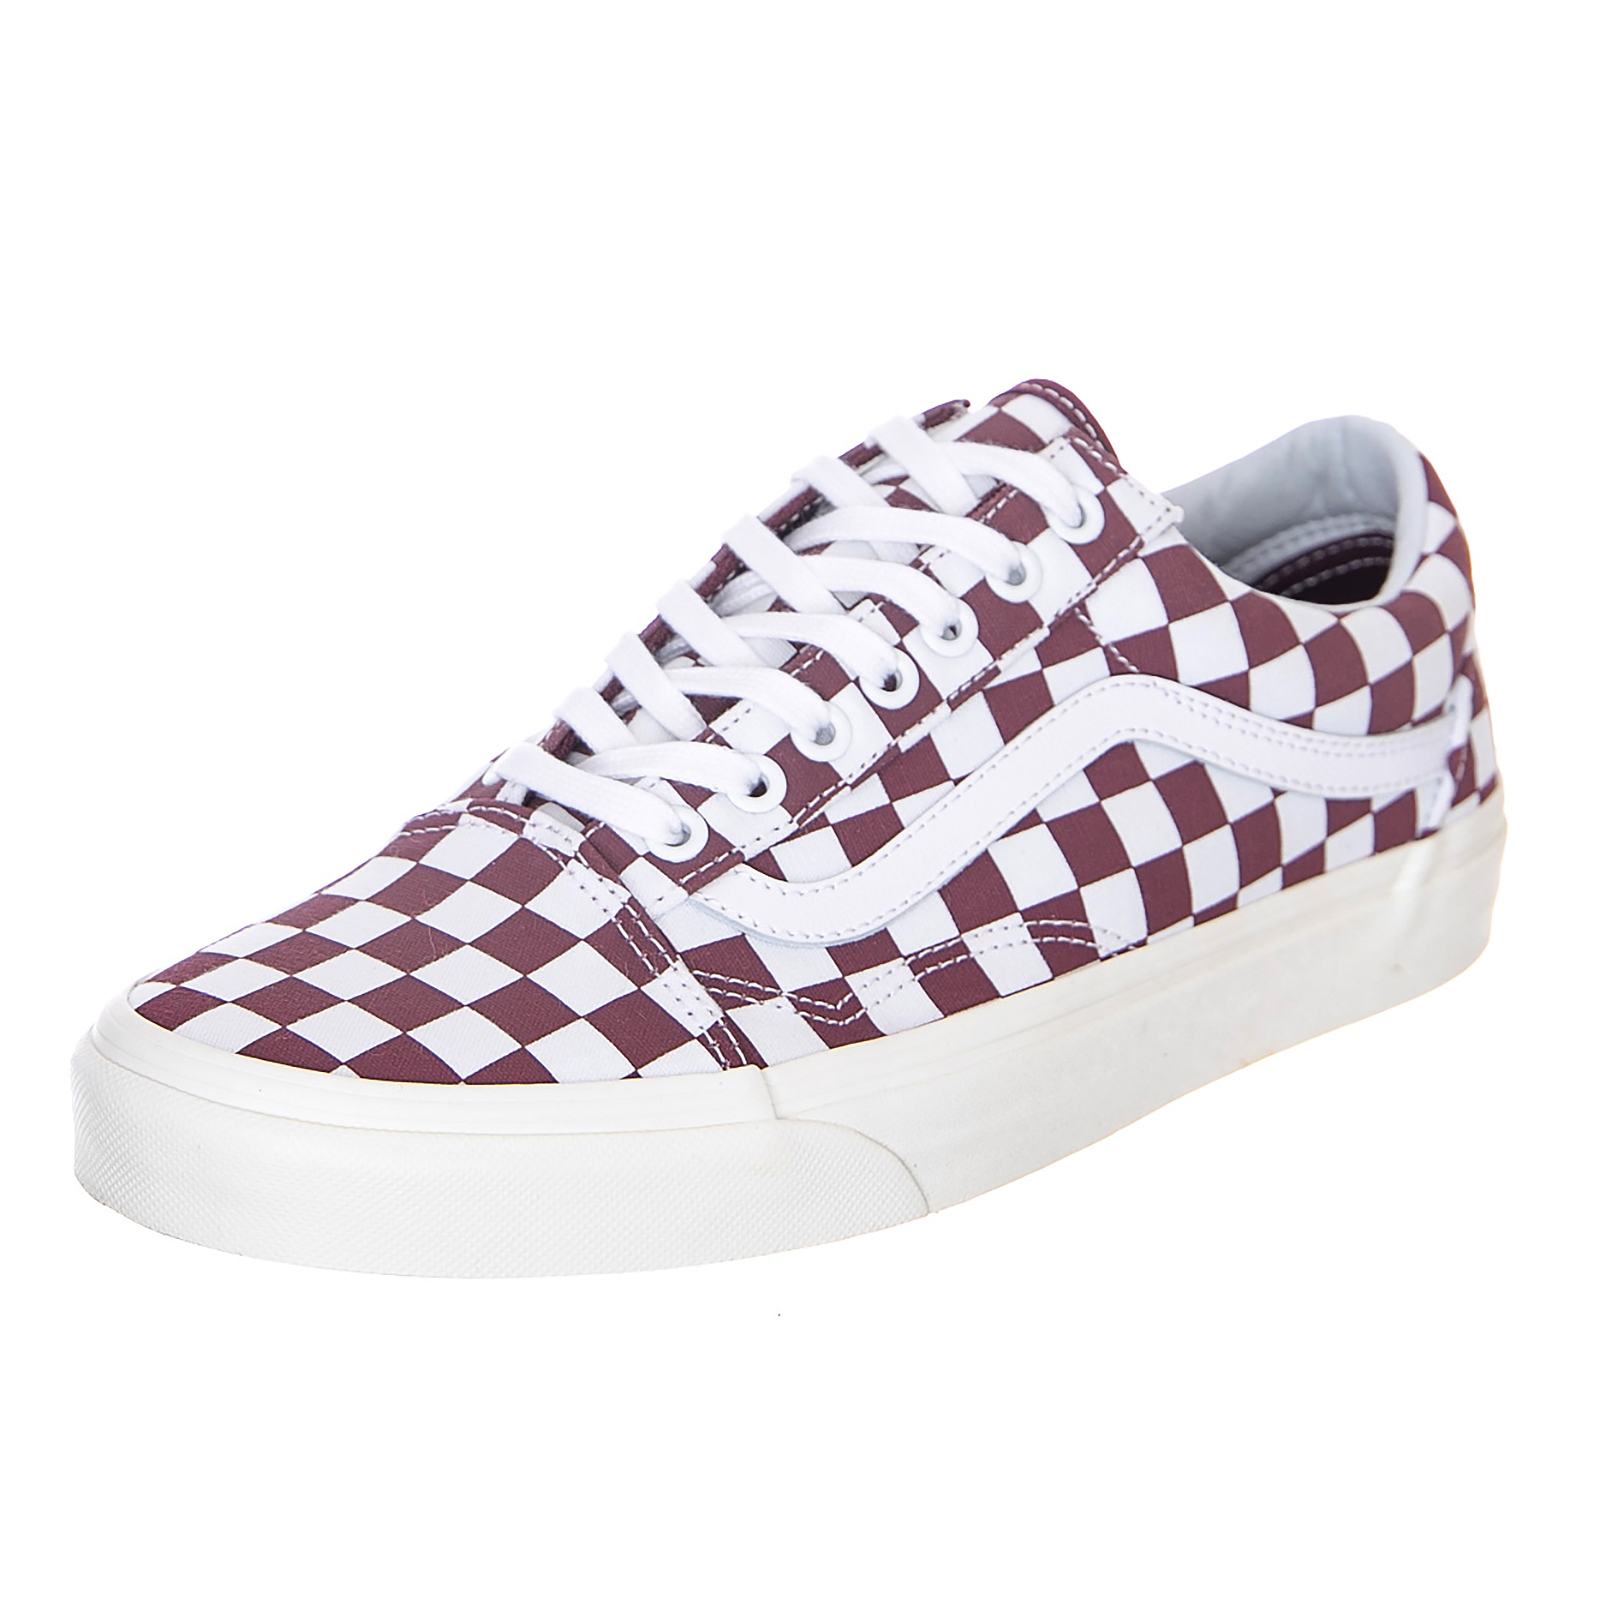 Details about Vans Old Skool Checkerboard Port Royale/Marshmallow Sneakers  Low Man Burgundy